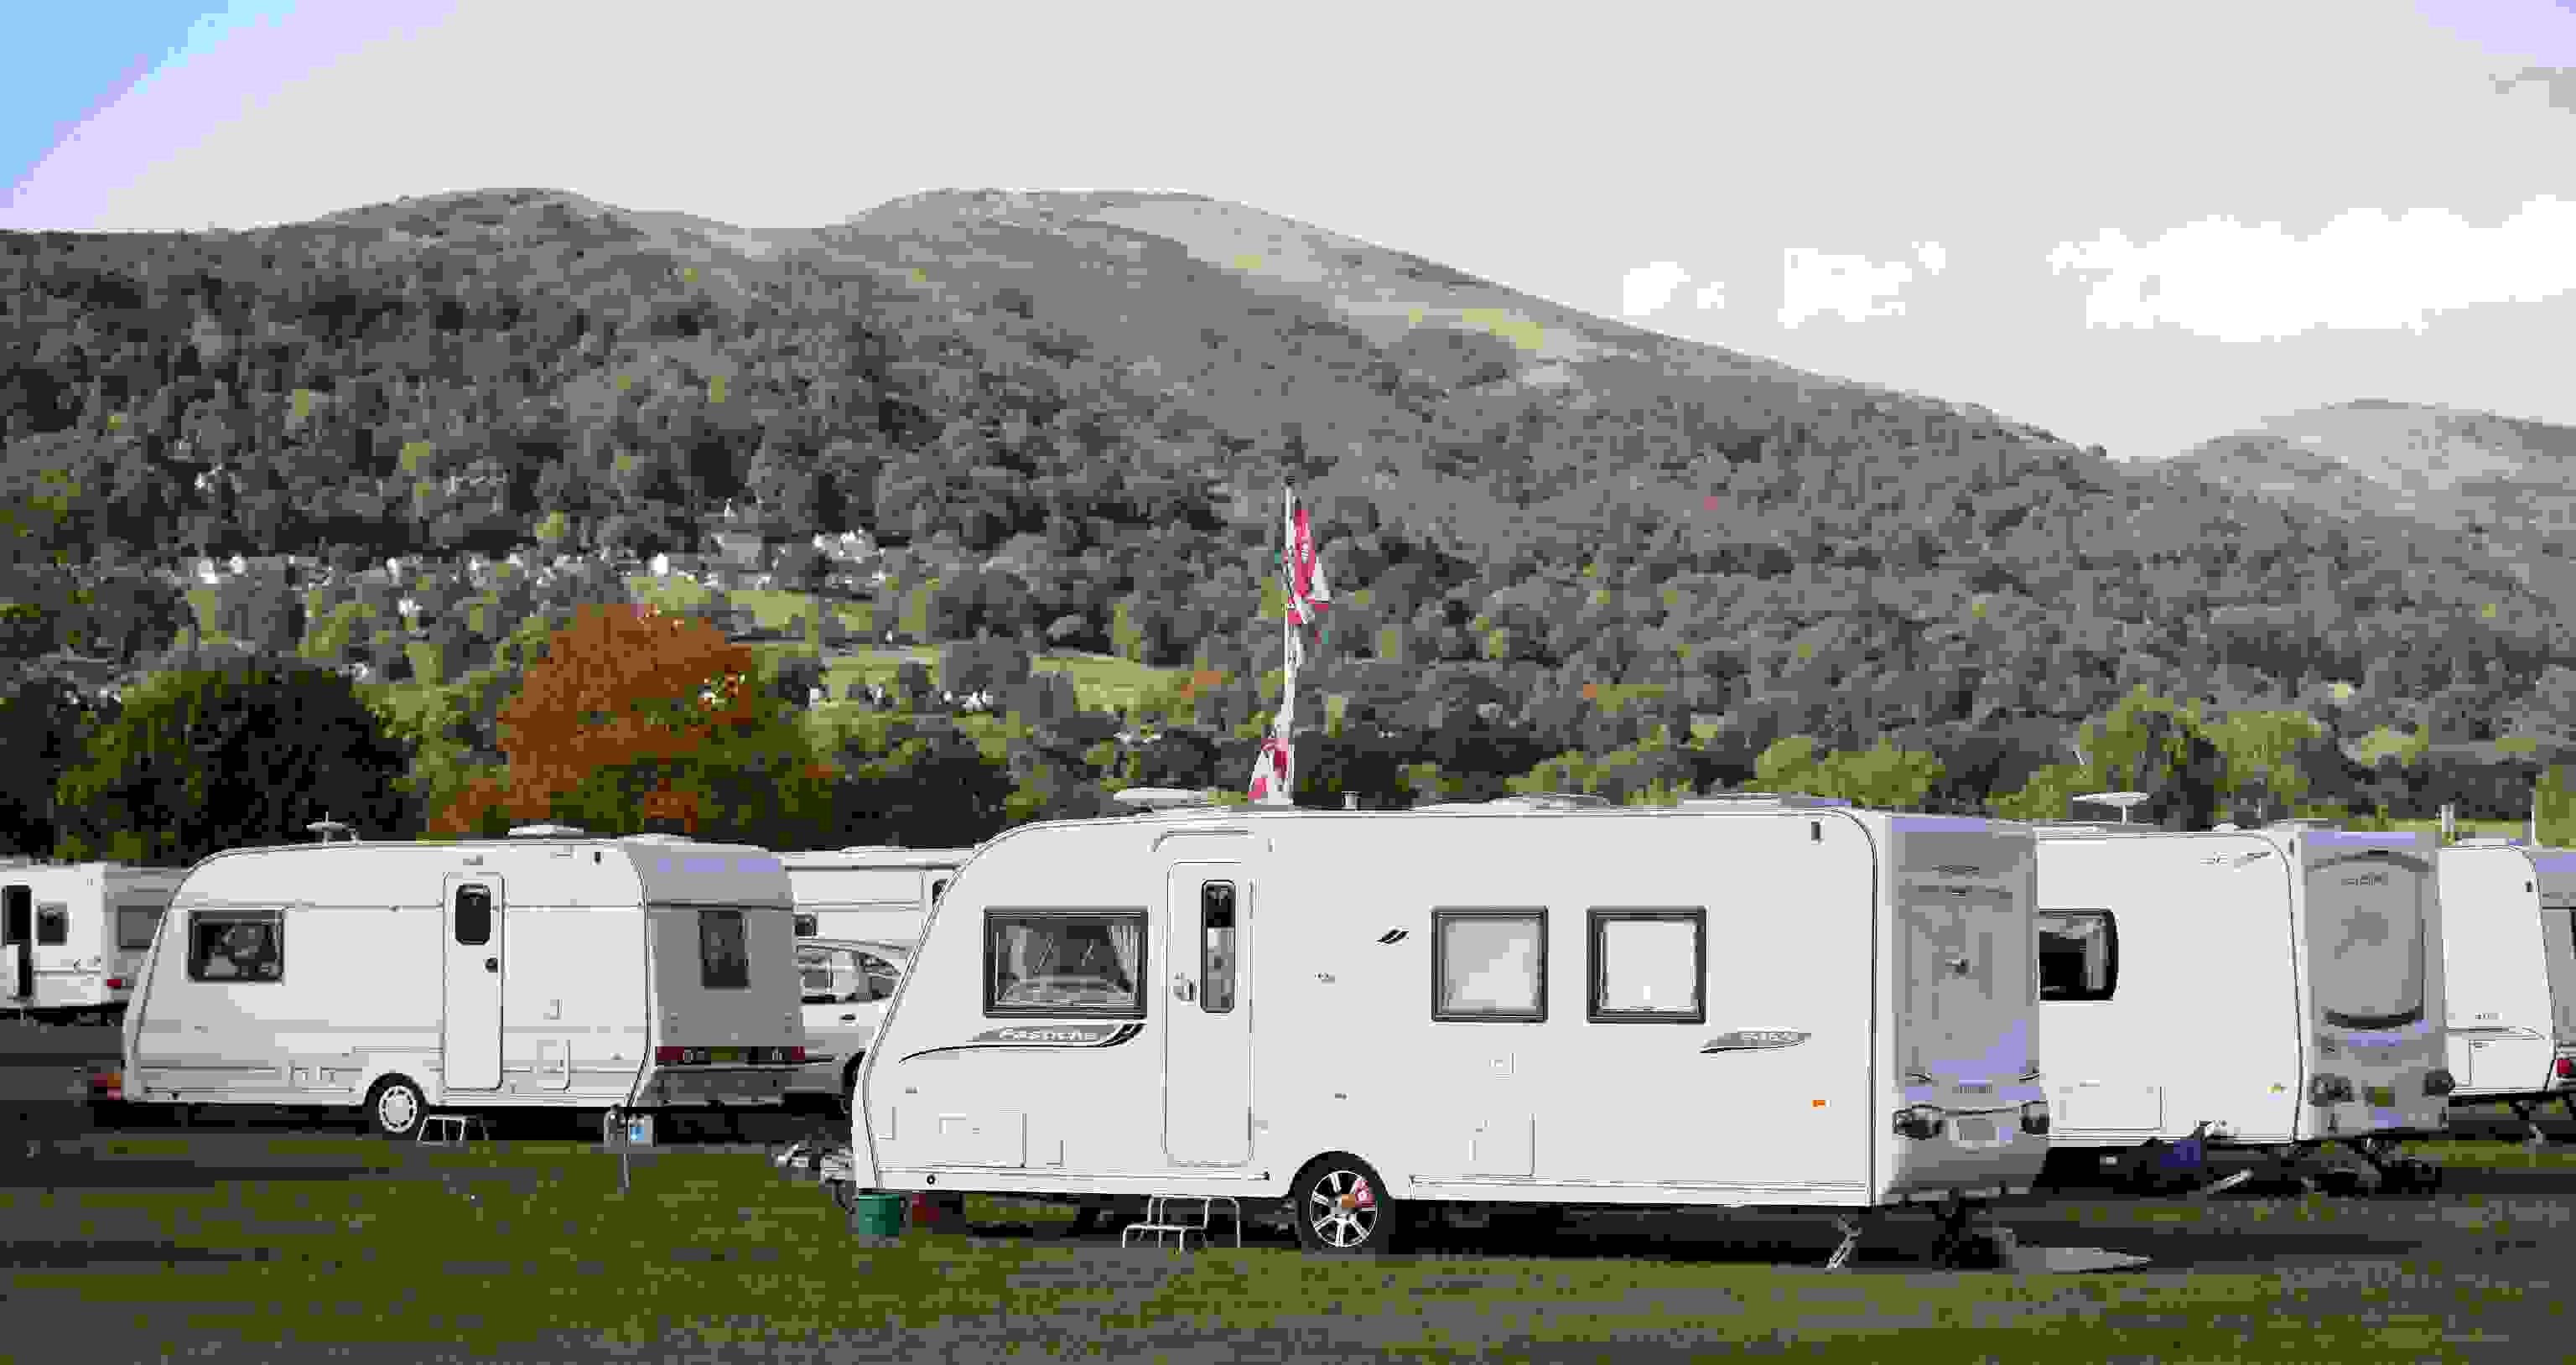 Caravan and Malvern Hills Backdrop